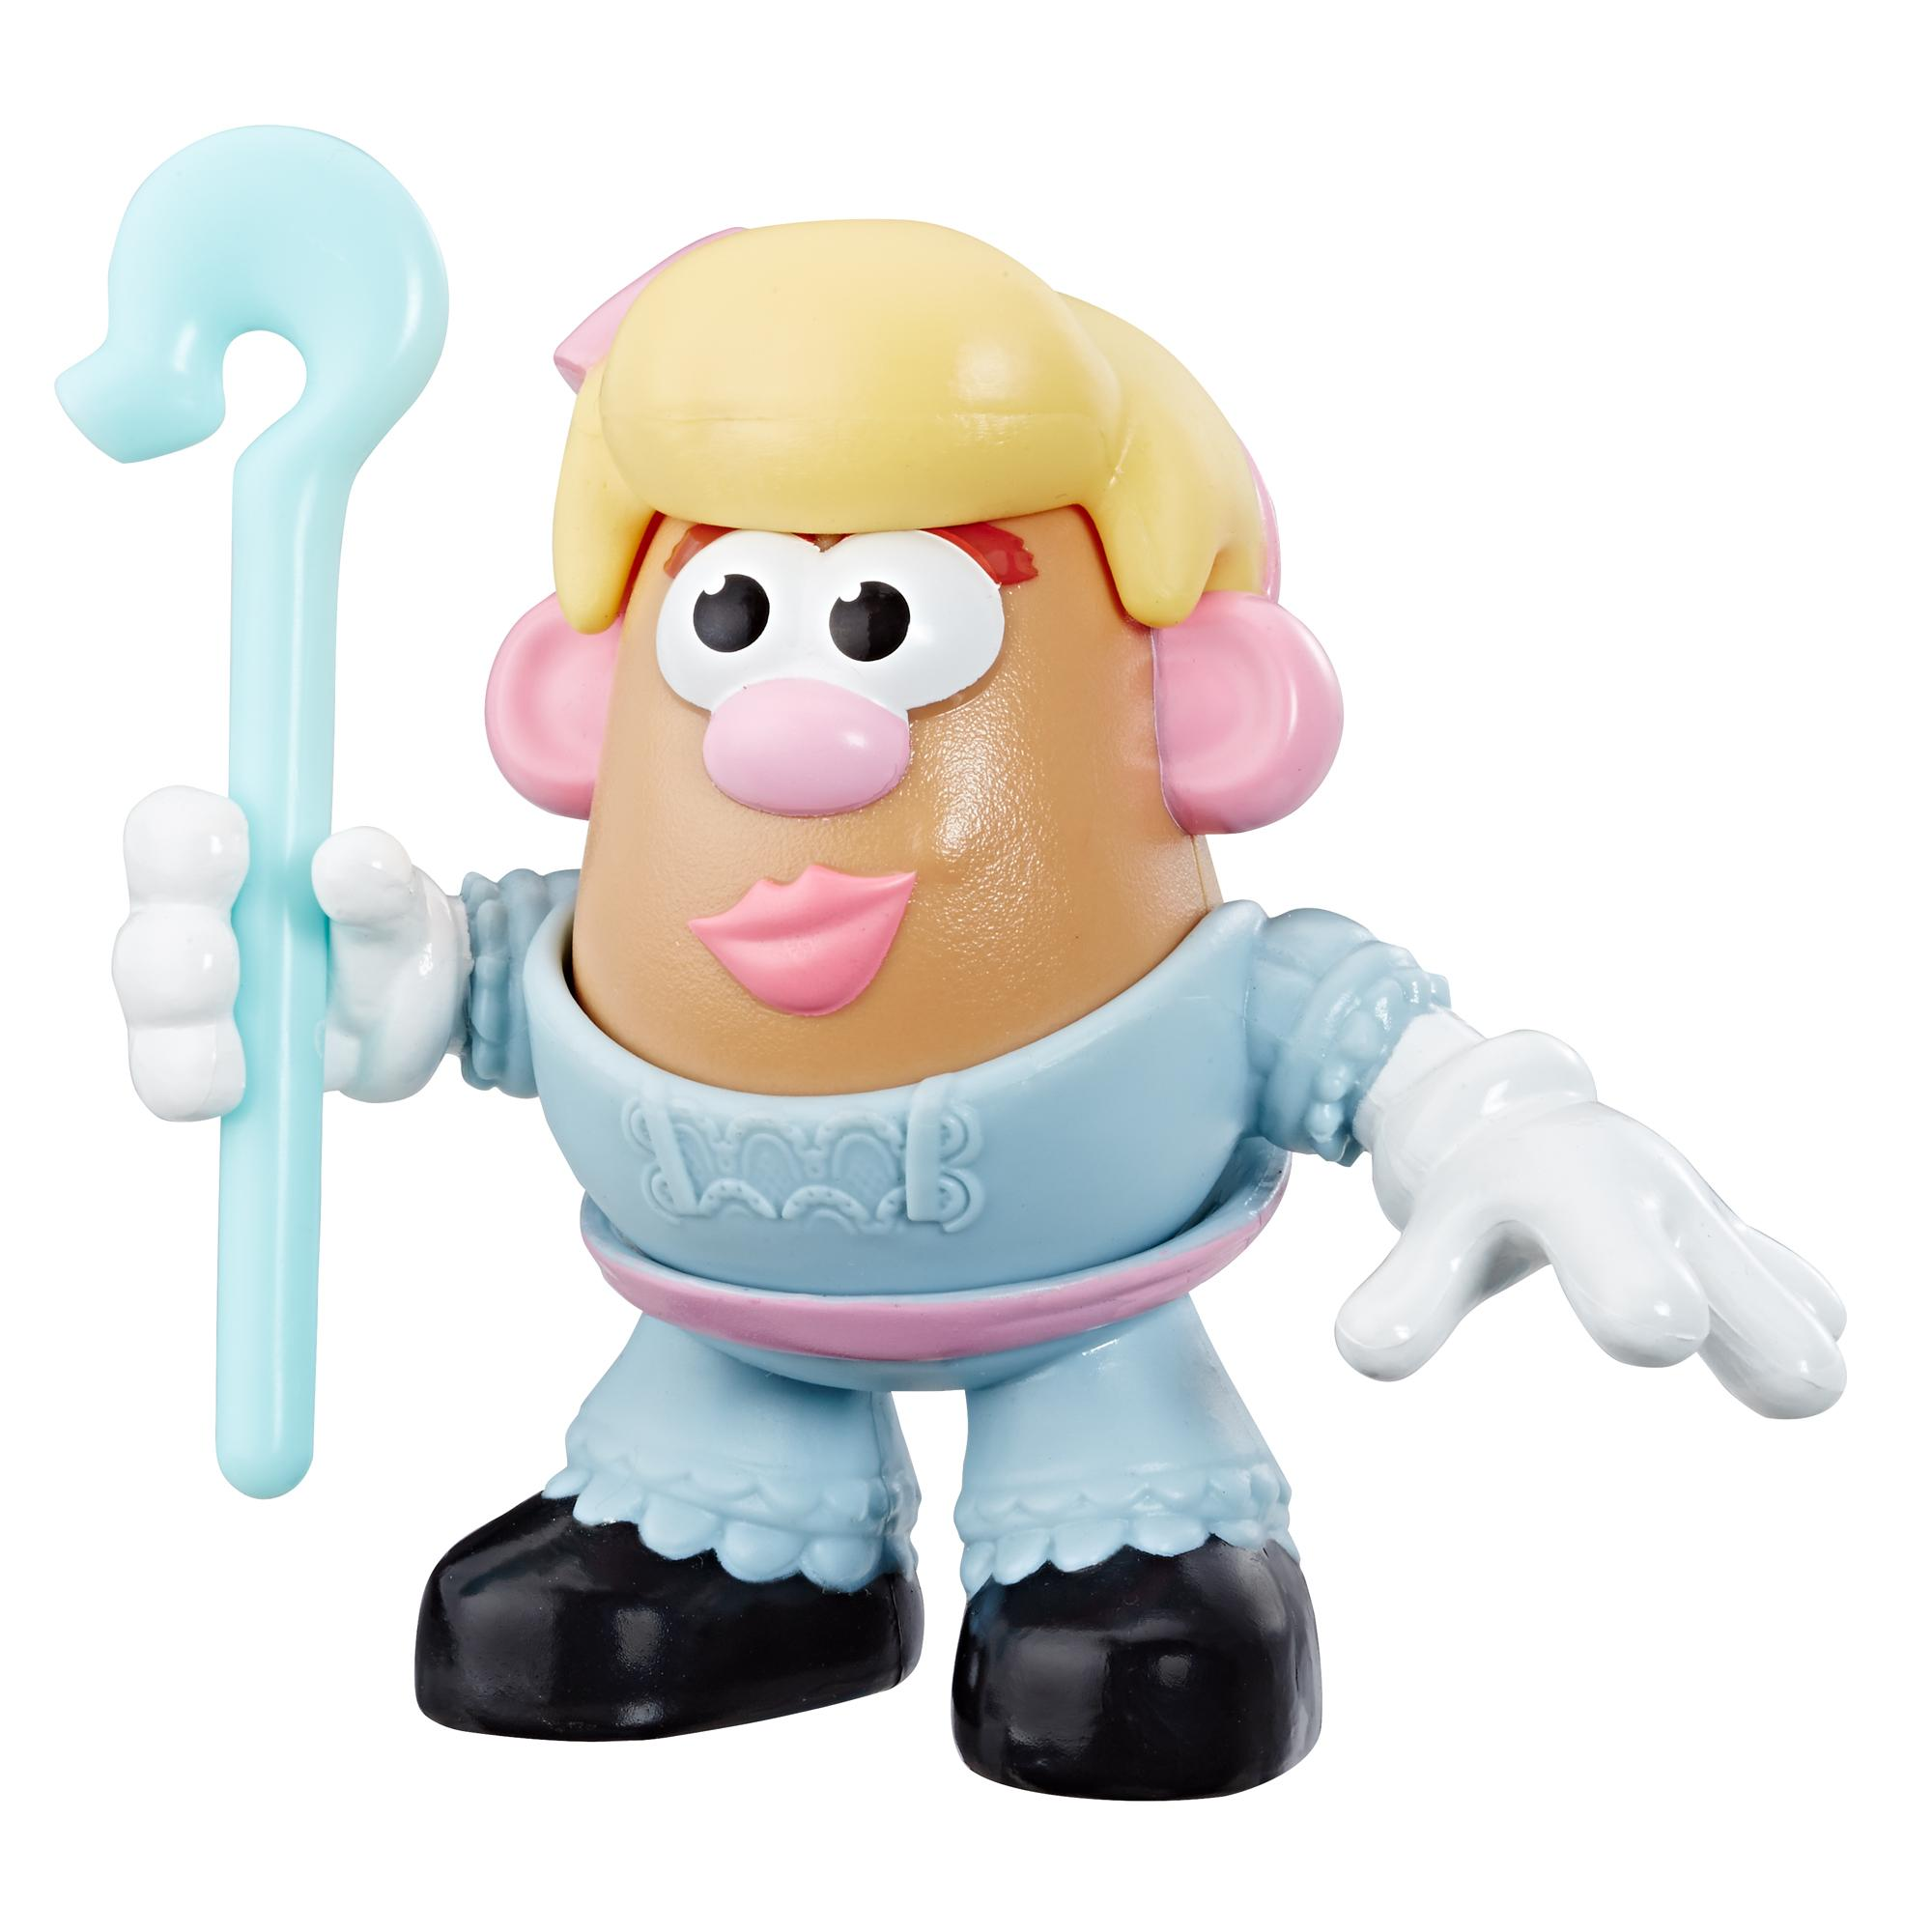 Mr. Potato Head Disney/Pixar Toy Story 4 Bo Peep Mini Figure